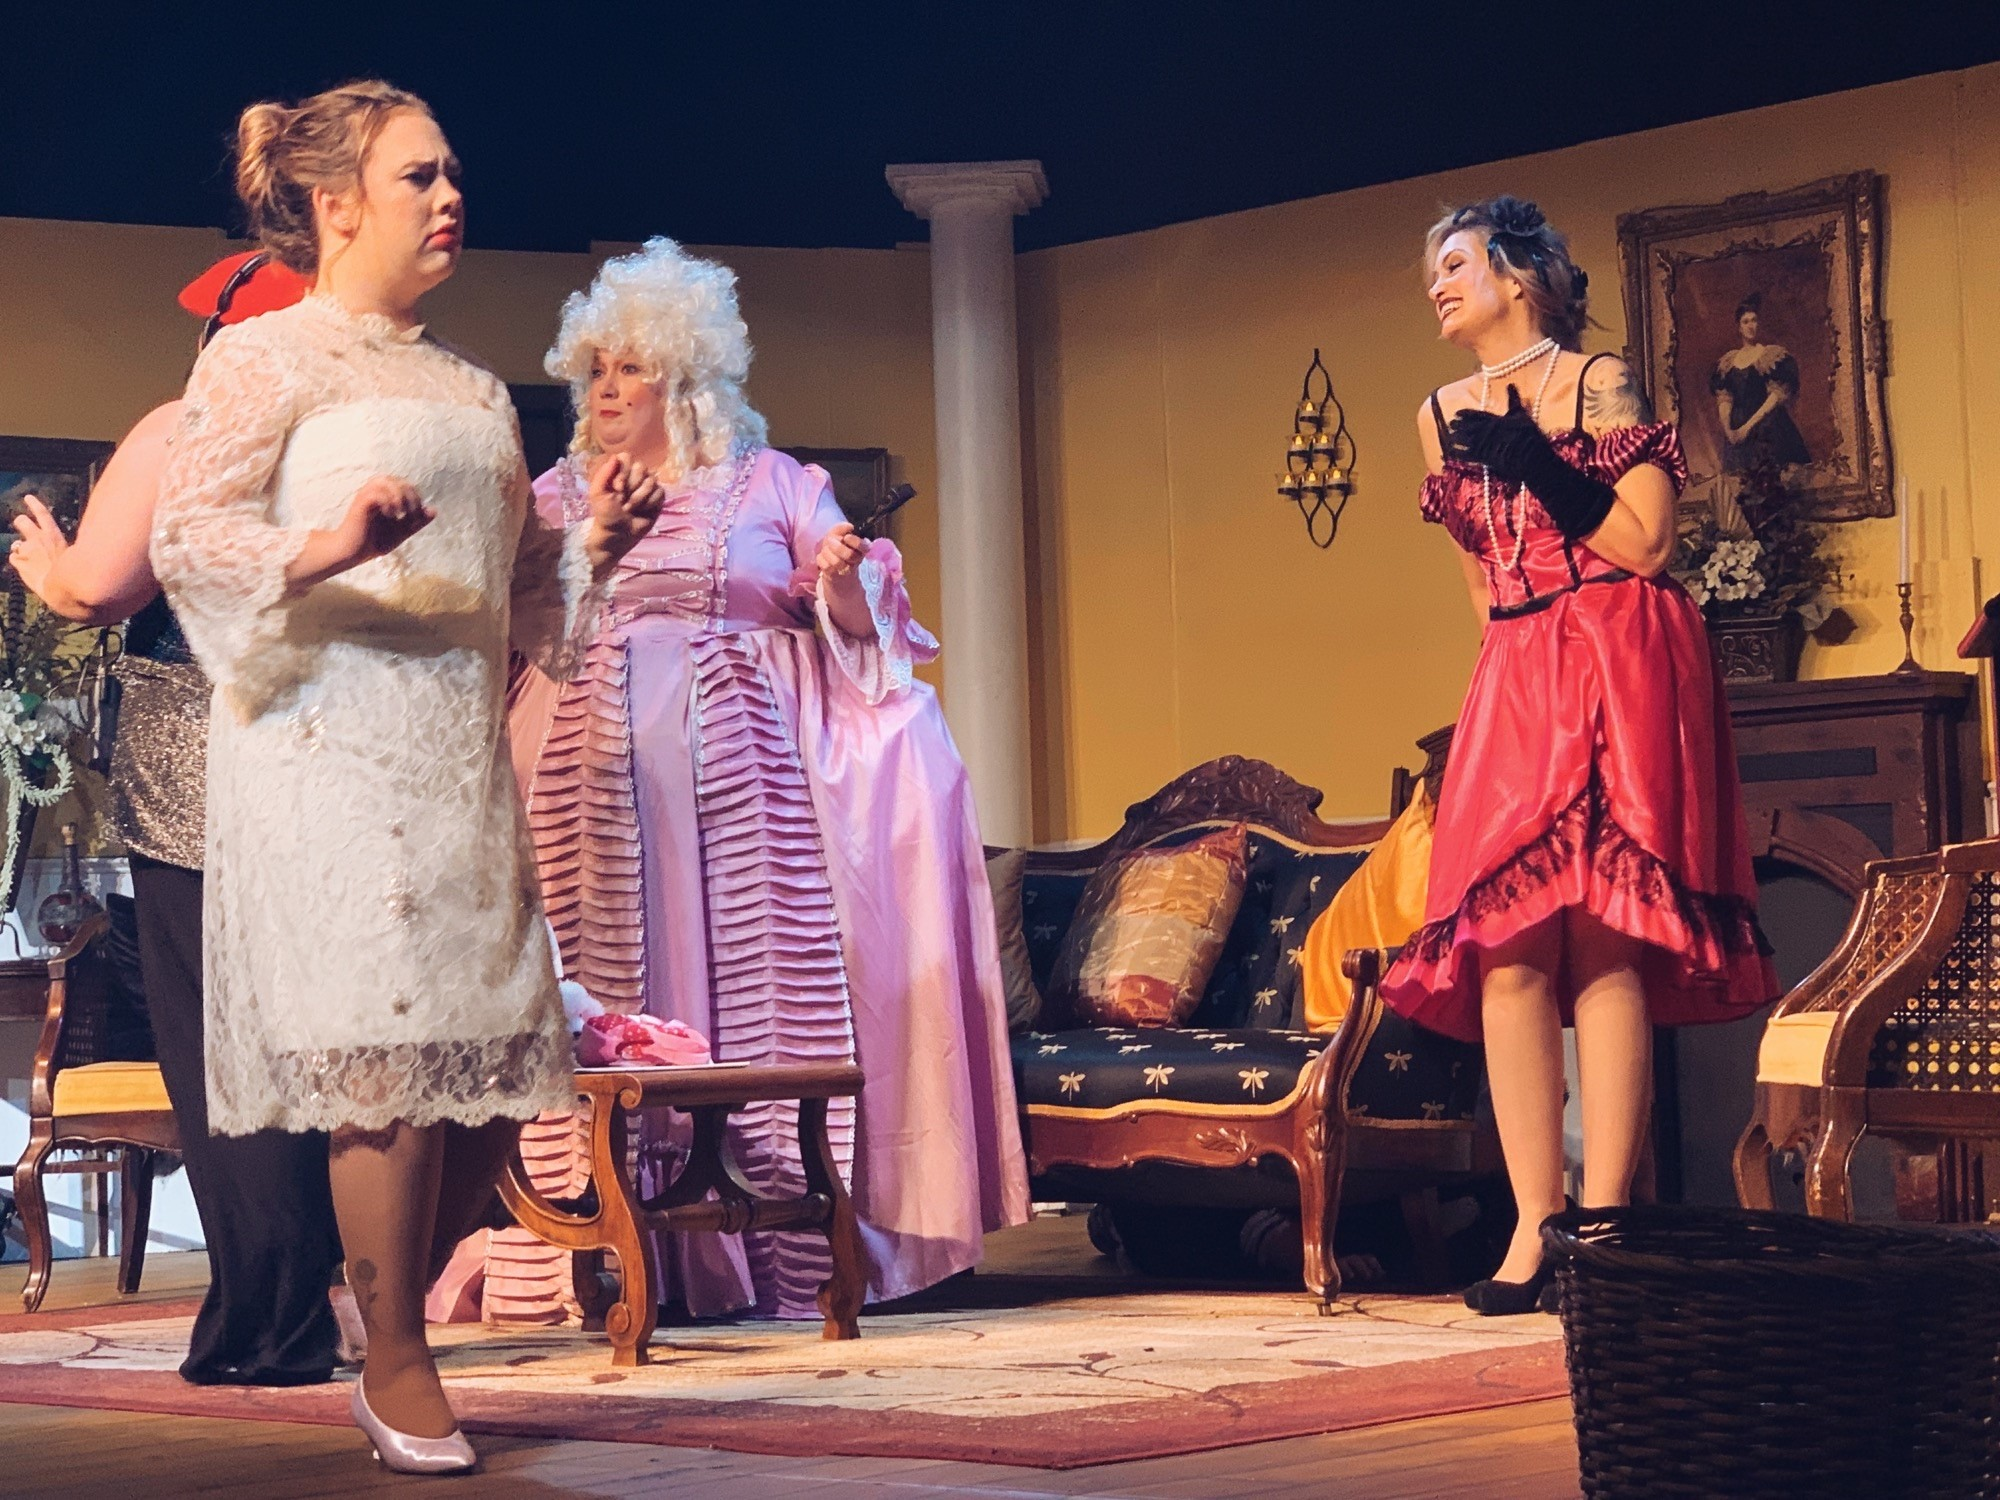 https://wearethe828.com/2021/06/14/when-you-audition-at-hendersonville-community-theatre/